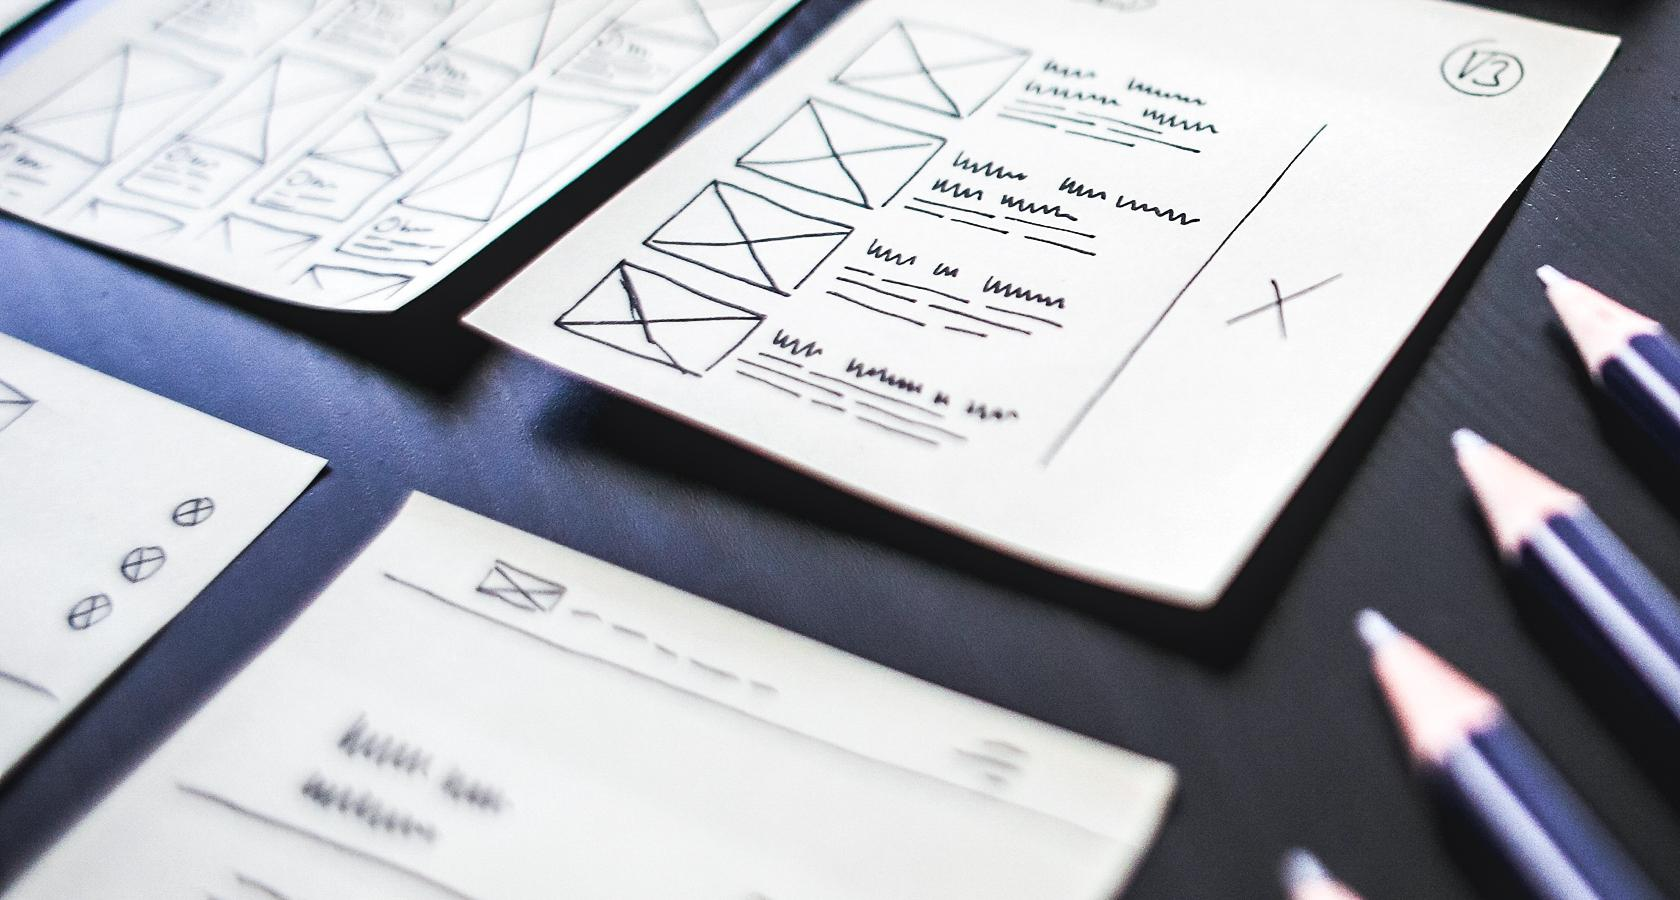 Wireframes drawn on the paper during web design process